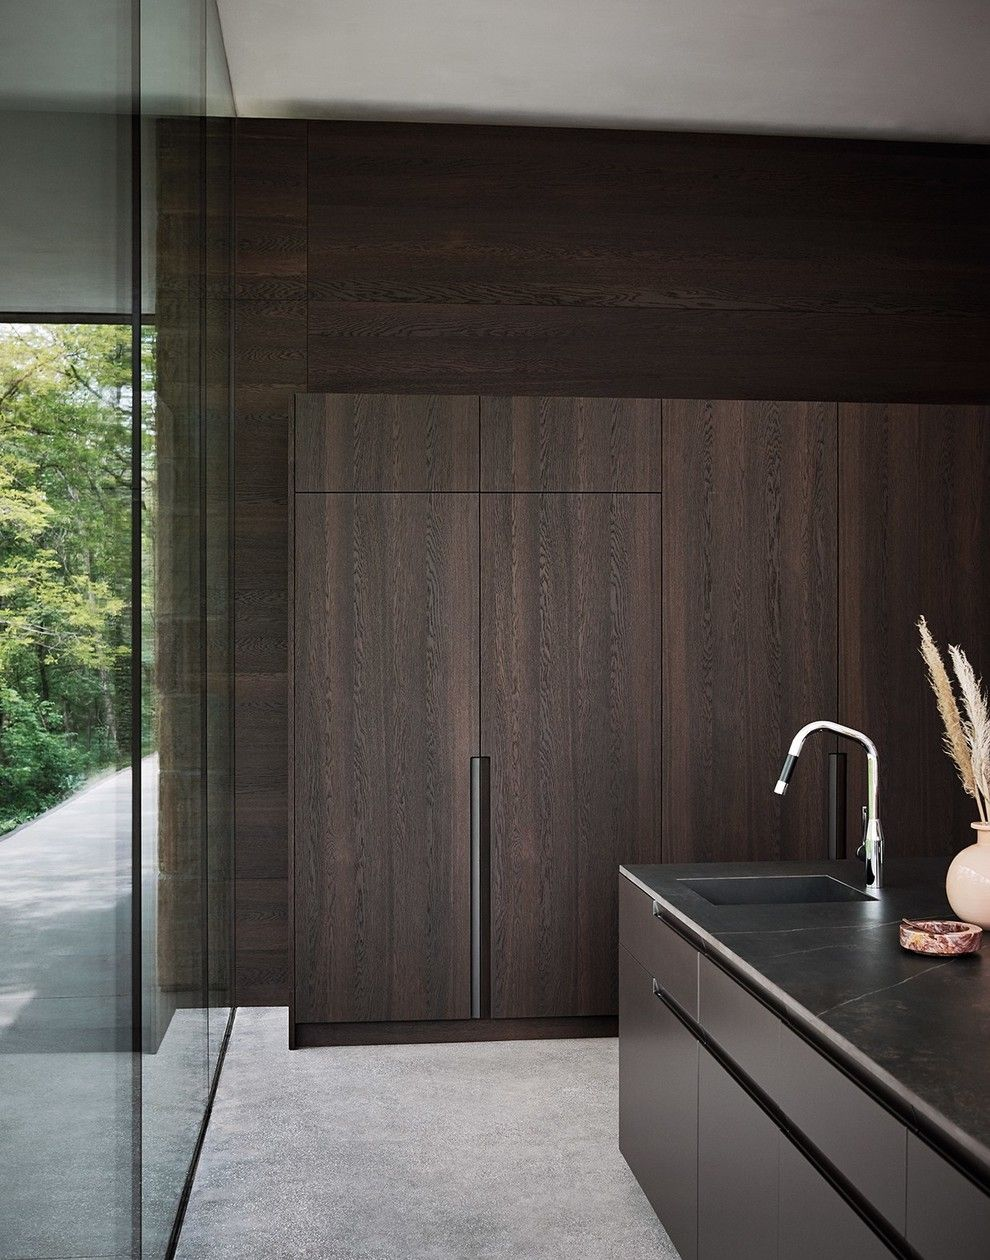 Oak fitted kitchen with island maxima composition by cesar